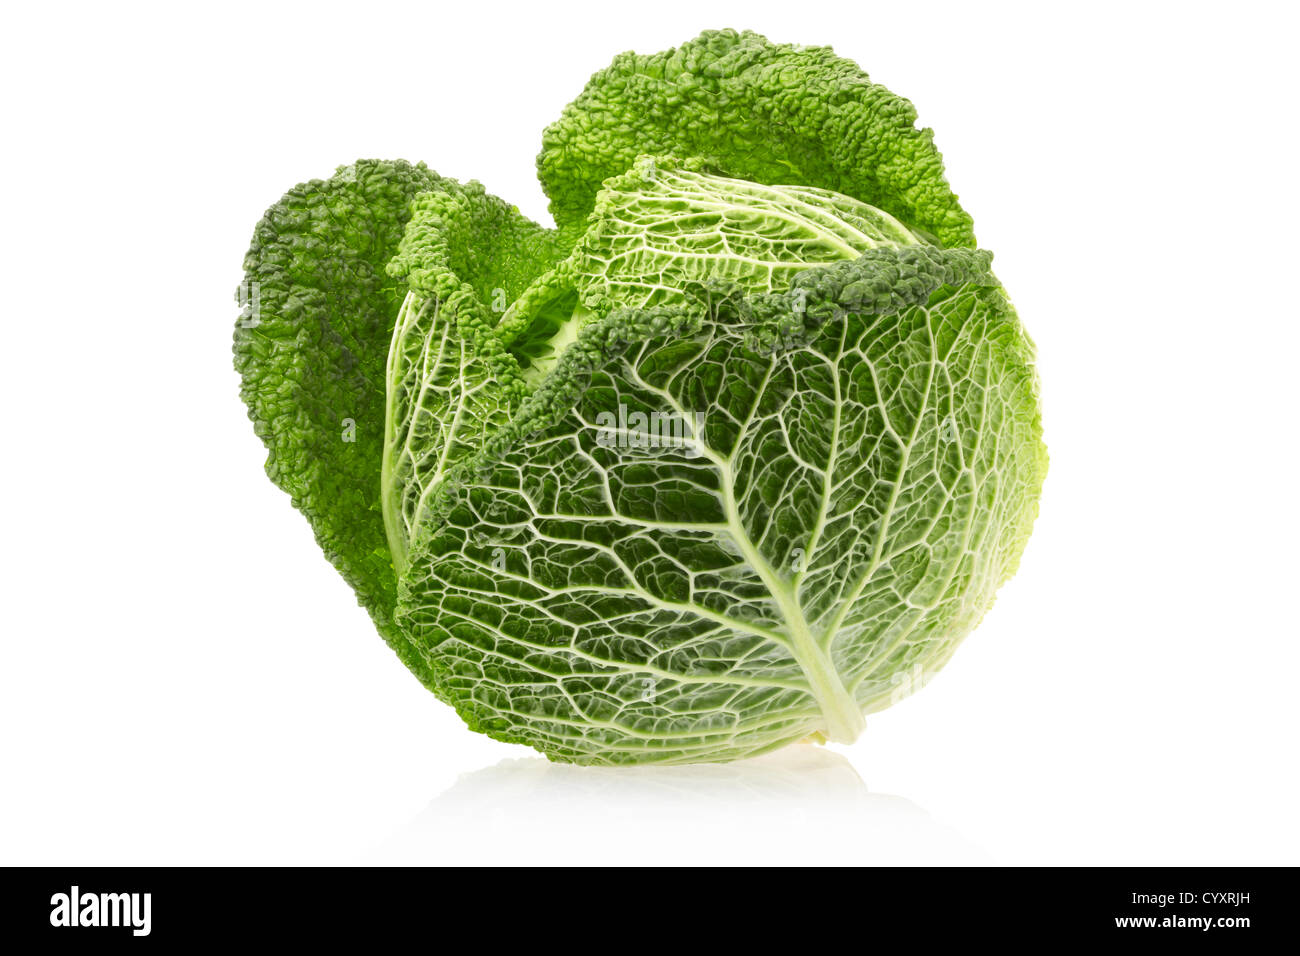 Green cabbage - Stock Image